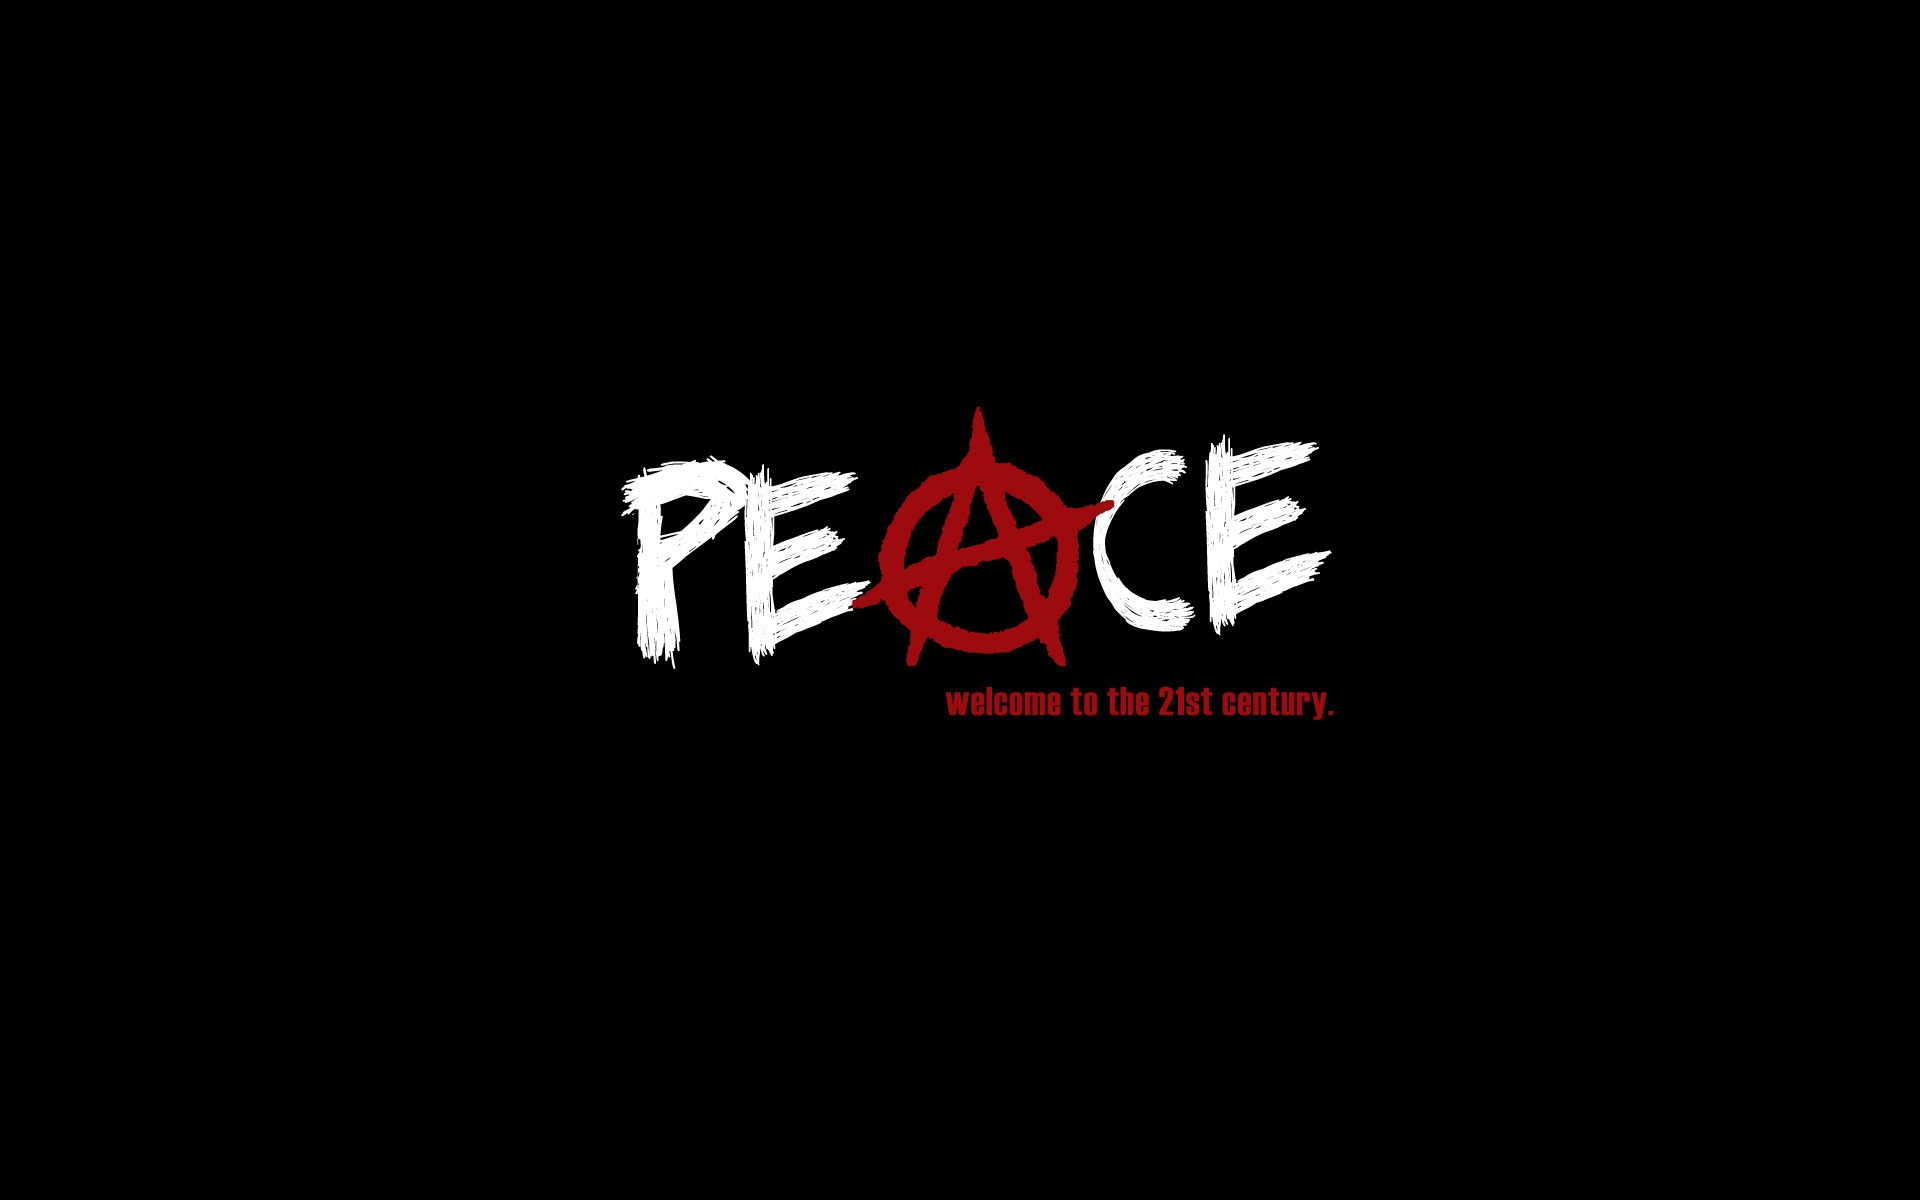 Peace Wallpapers HD Pictures One HD Wallpaper Pictures 1920x1200